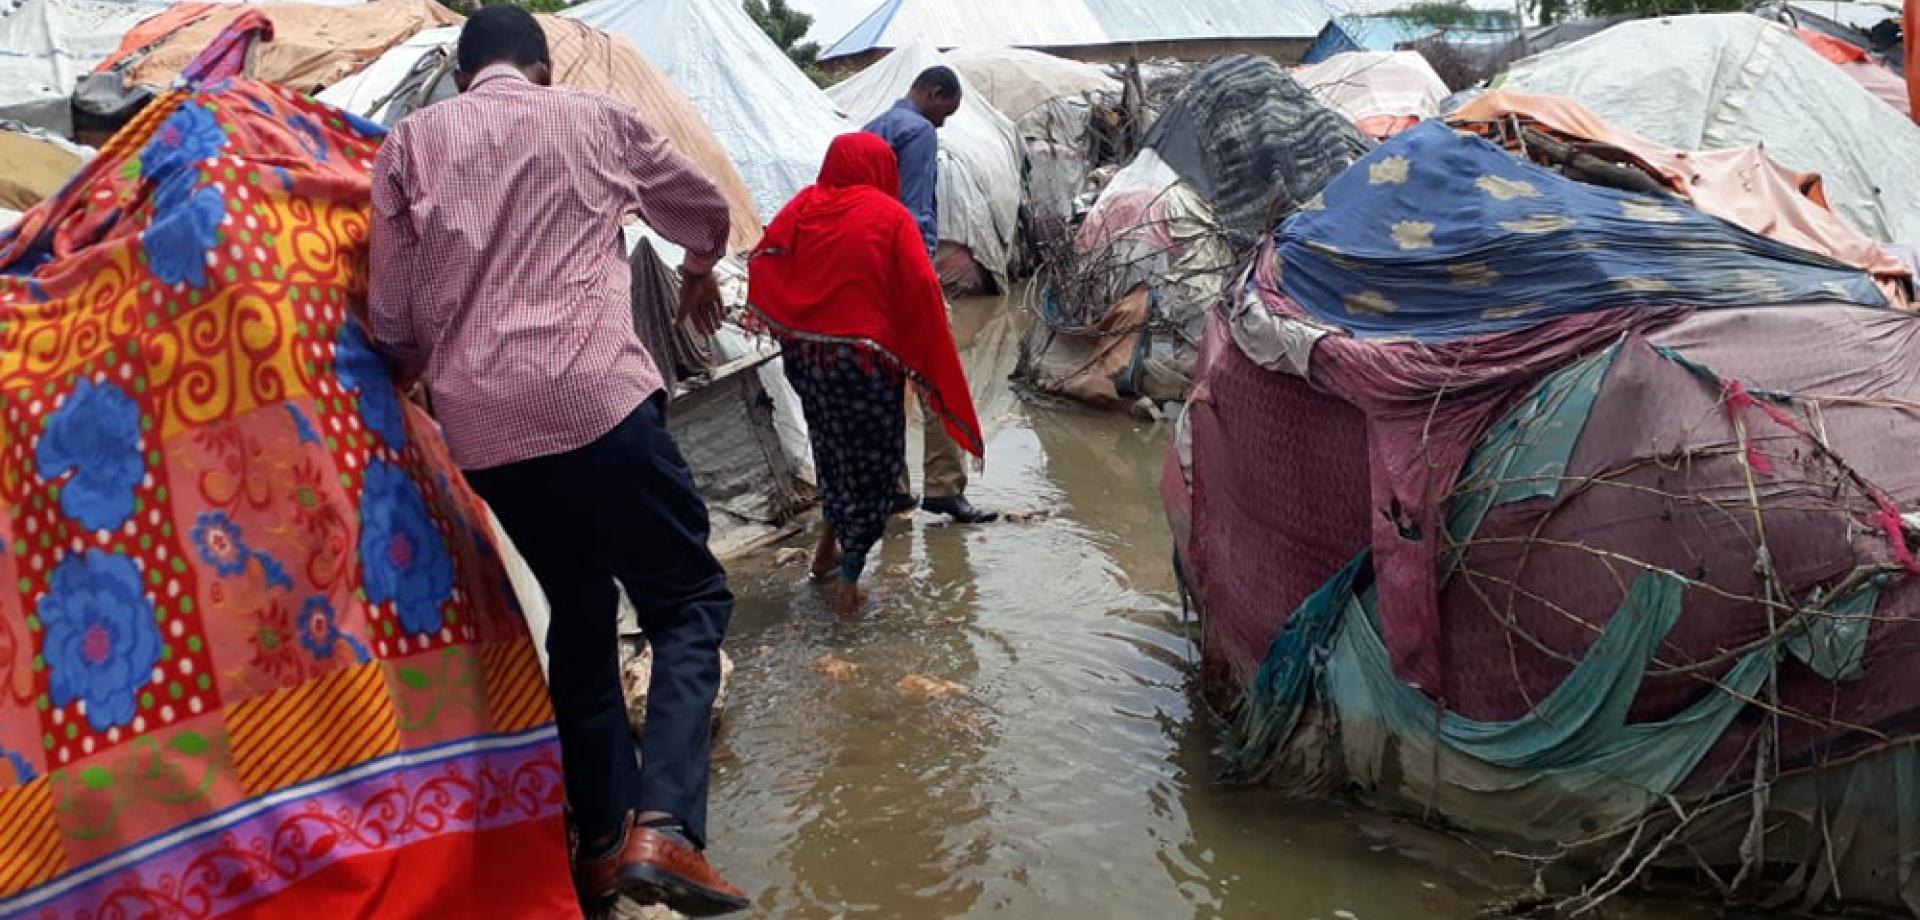 A flooded camp for internally displaced people in the Beledweyne district of central Somalia.